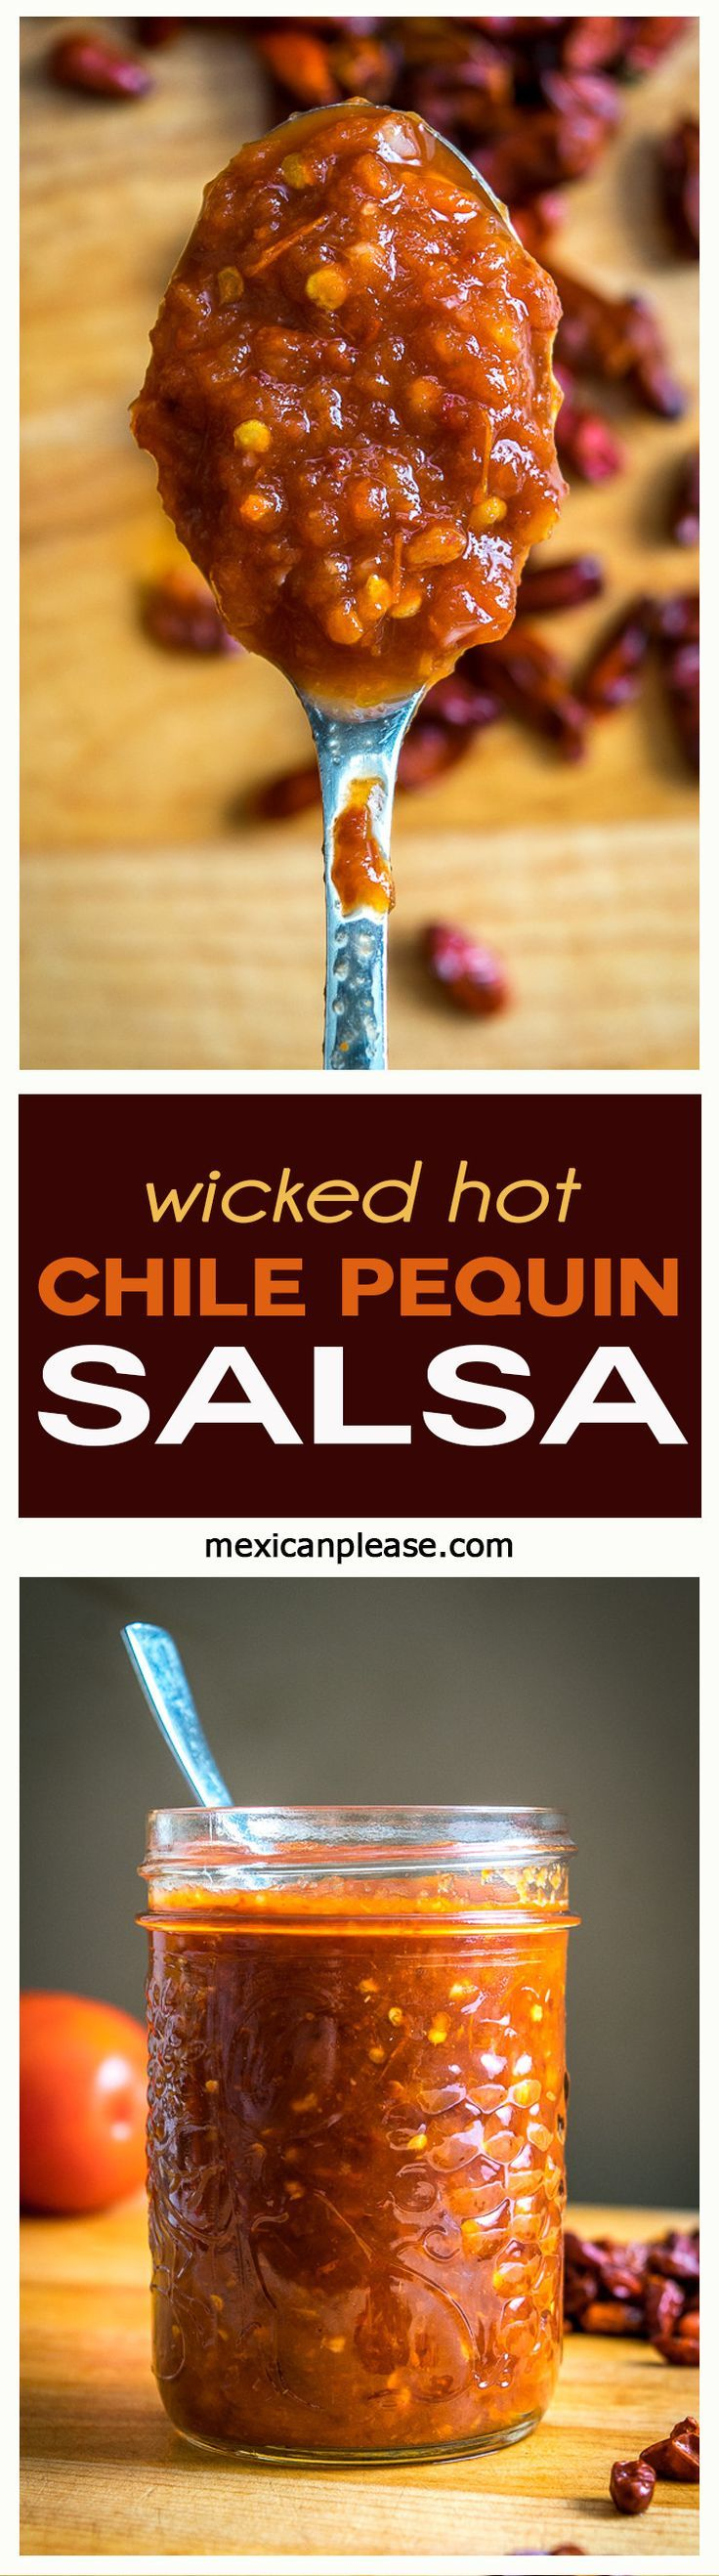 This Wicked Hot Chipotle Chile Pequin Salsa relies on Chipotles for flavor and Chile Pequins for heat. It's like your own personal hot sauce!  http://mexicanplease.com